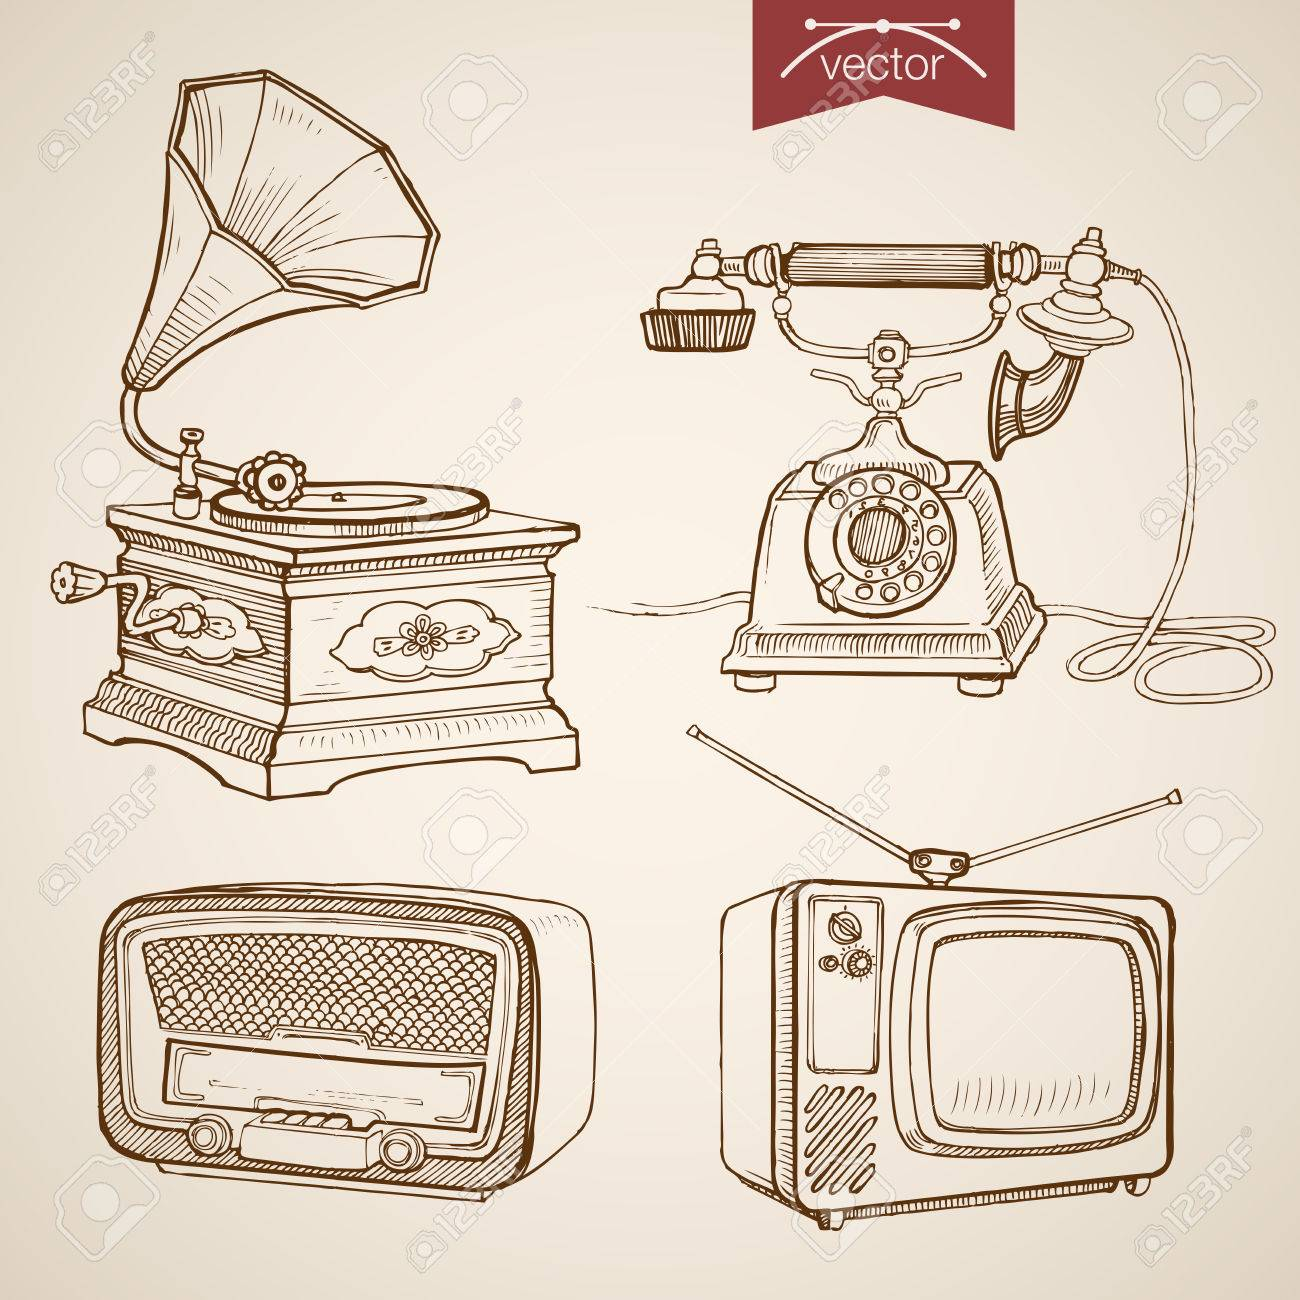 Engraving vintage hand drawn vector video music sound retro equipment collection pencil sketch phone